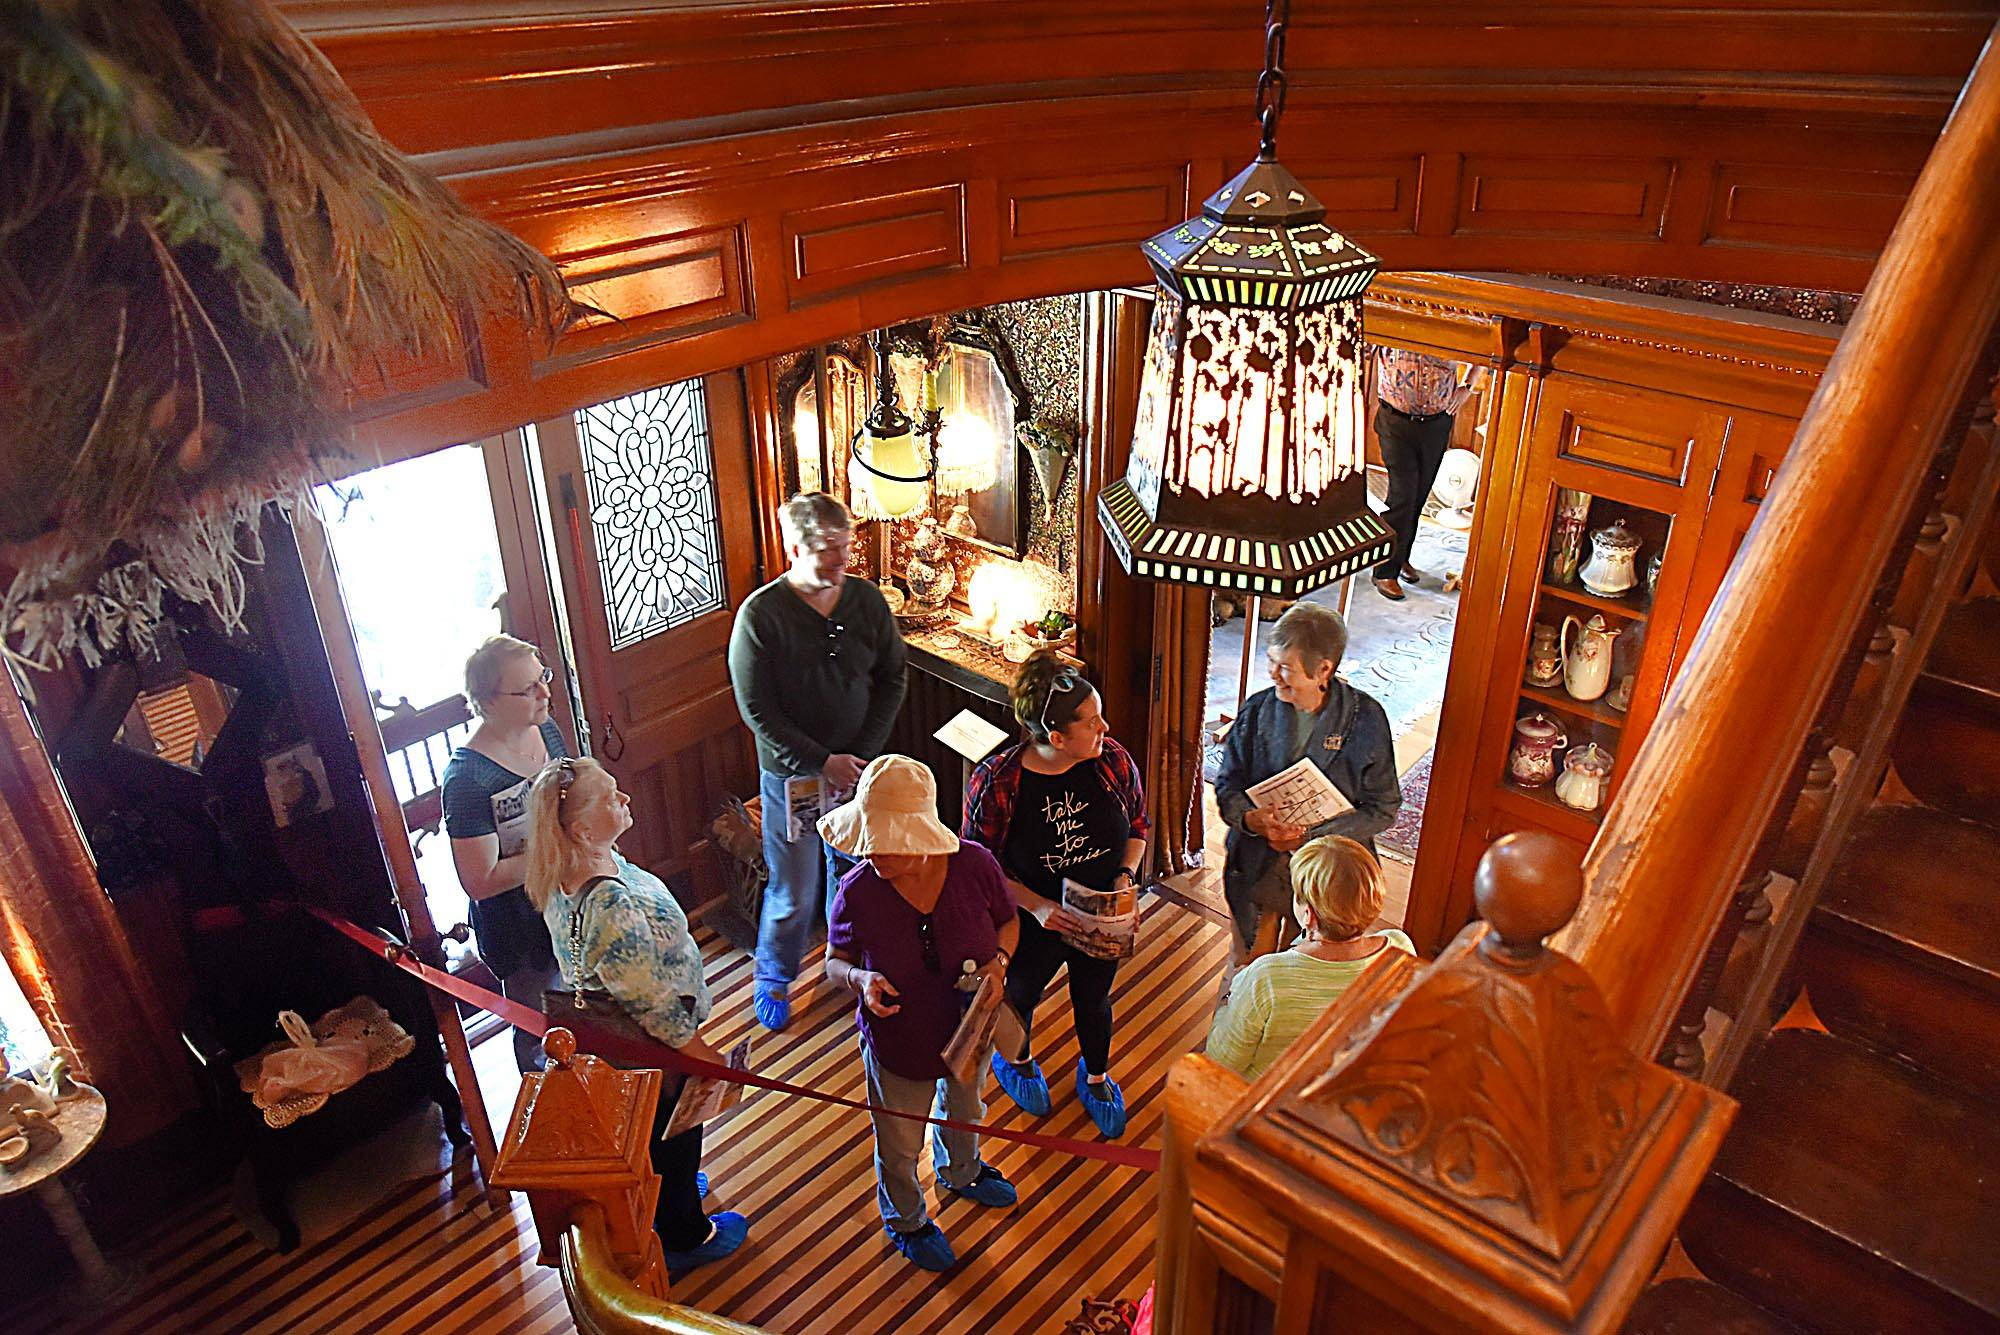 Visitors enter the Wing Manshion during the Historic Elgin House Tour Saturday on Highland Avenue in Elgin.